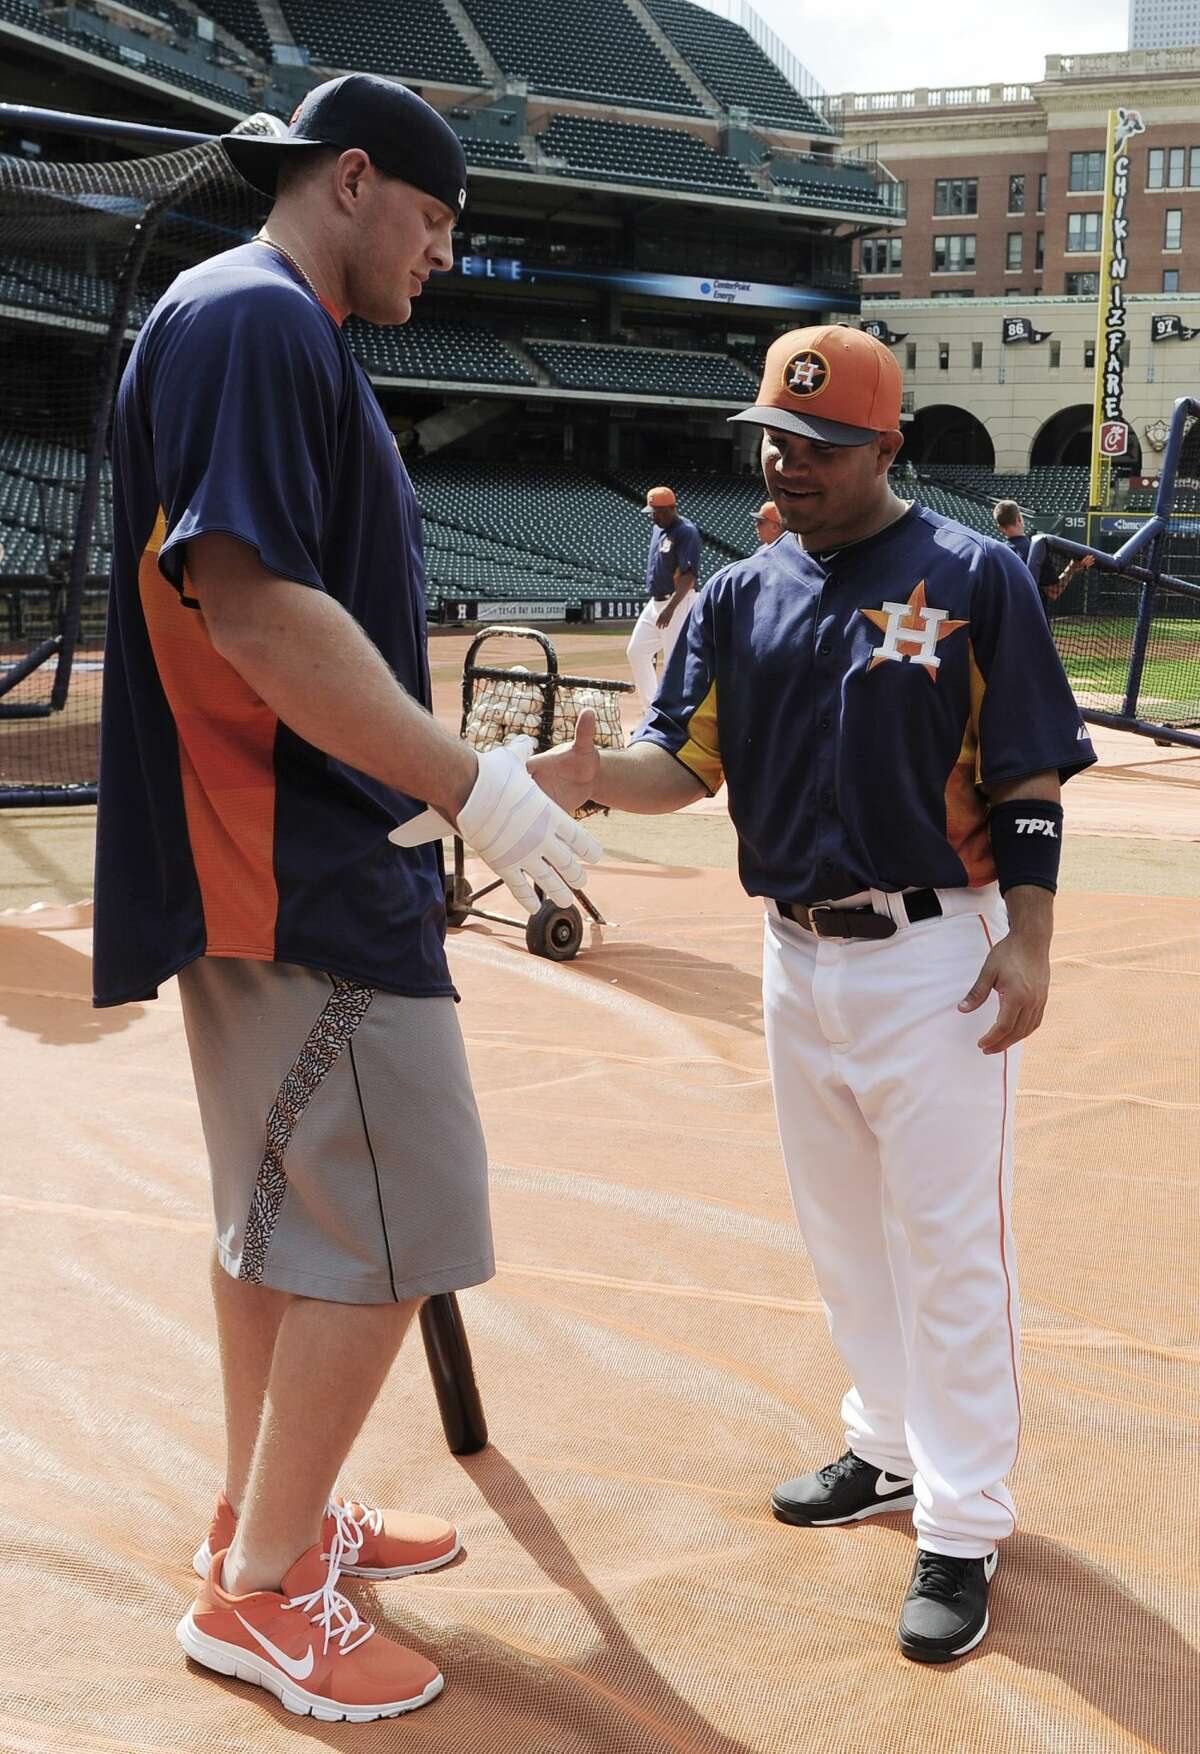 Houston Texans football player J.J. Watt, left, greets Houston Astros' Jose Altuve at batting practice before an exhibition baseball game against the Chicago Cubs Friday, March 29, 2013, in Houston. (AP Photo/Pat Sullivan) Browse through the photos for a look at the Sports Illustrated covers for their Sportsperson of the Year issue each year andWatt's appearance onNBC's